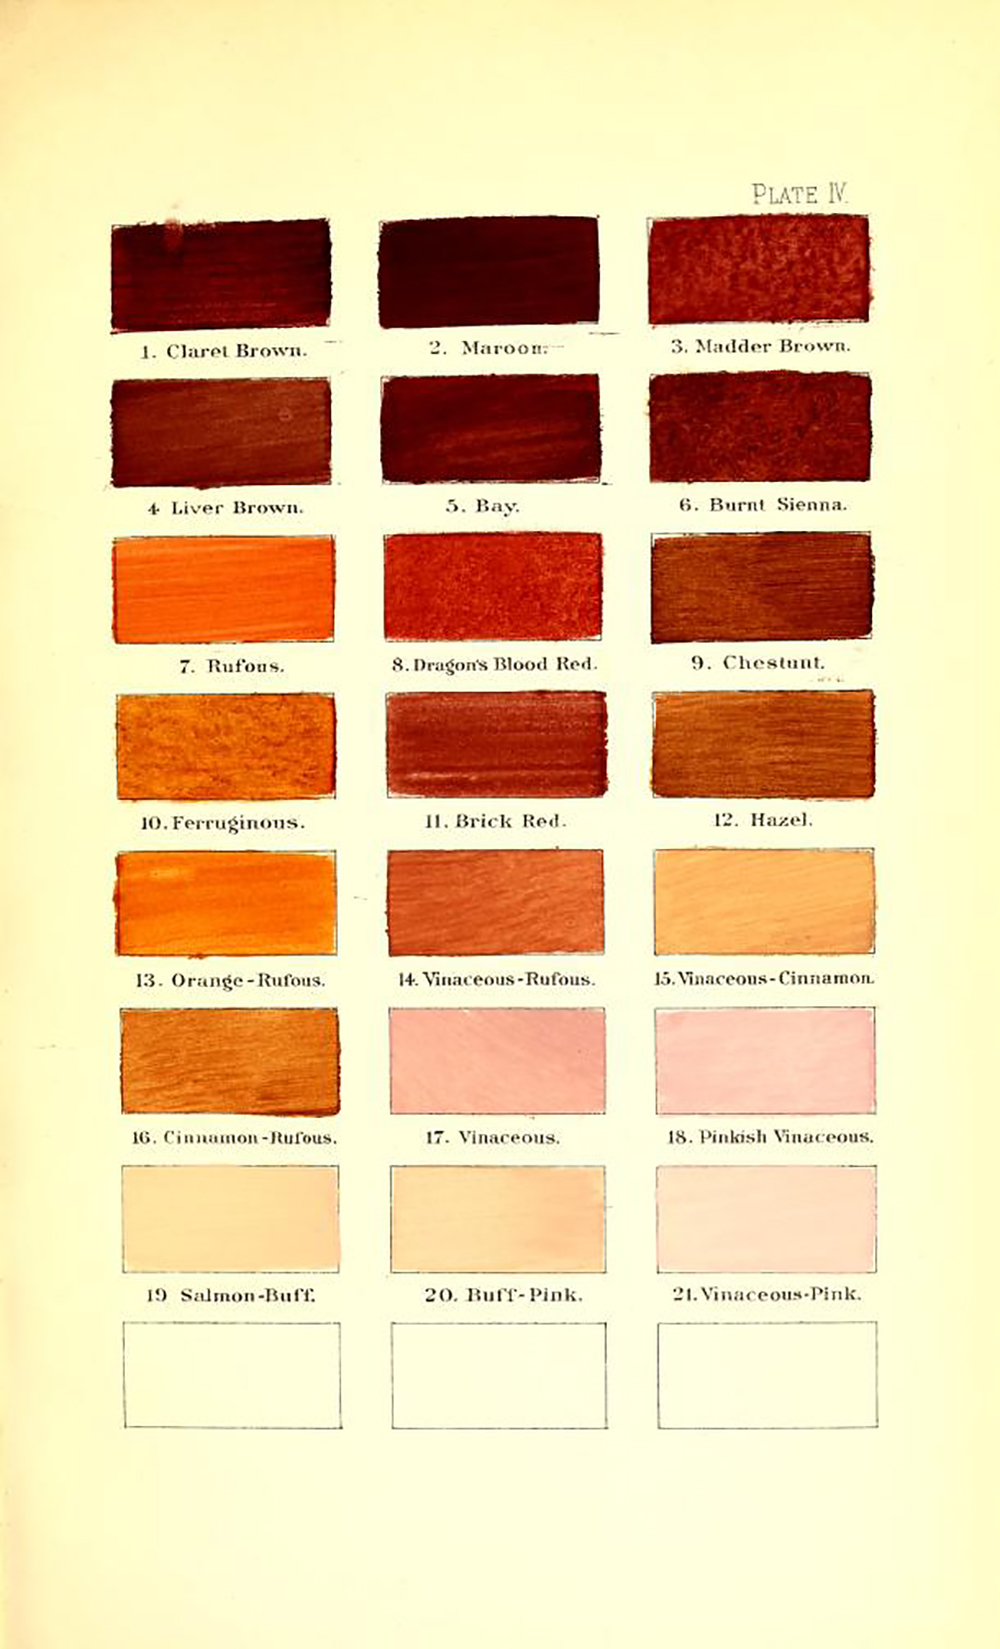 Ridgway color dictionary - reds